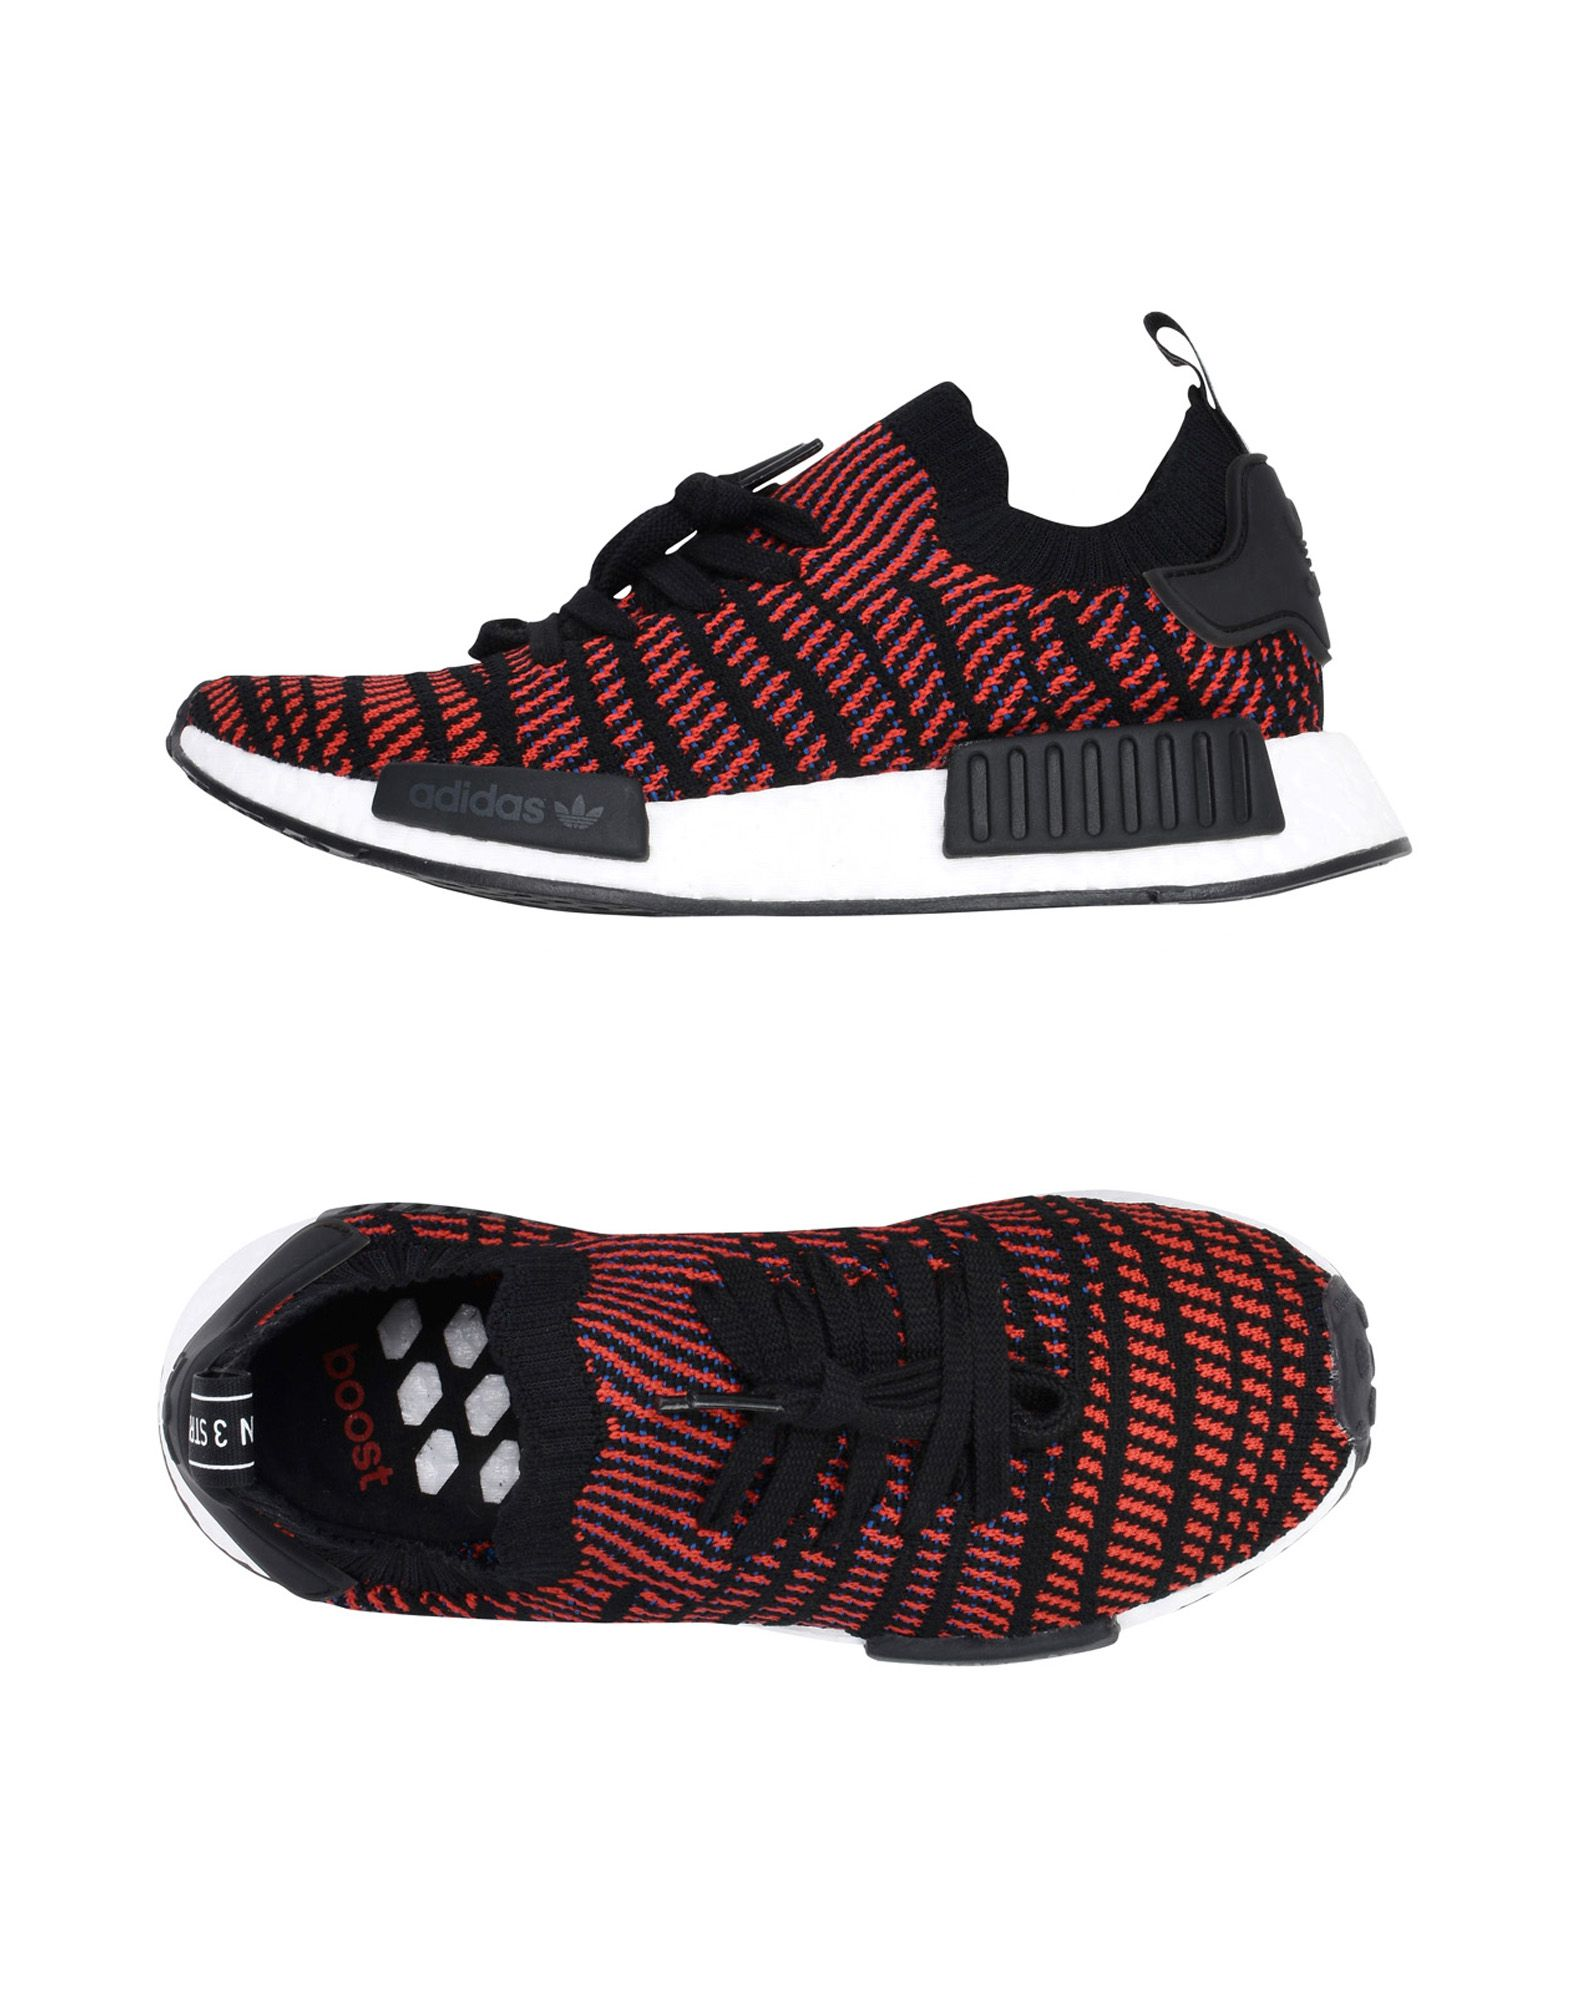 Adidas Originals Nmd_R1 - Stlt Pk - Sneakers - Nmd_R1 Women Adidas Originals Sneakers online on  United Kingdom - 11414663MU b8068d